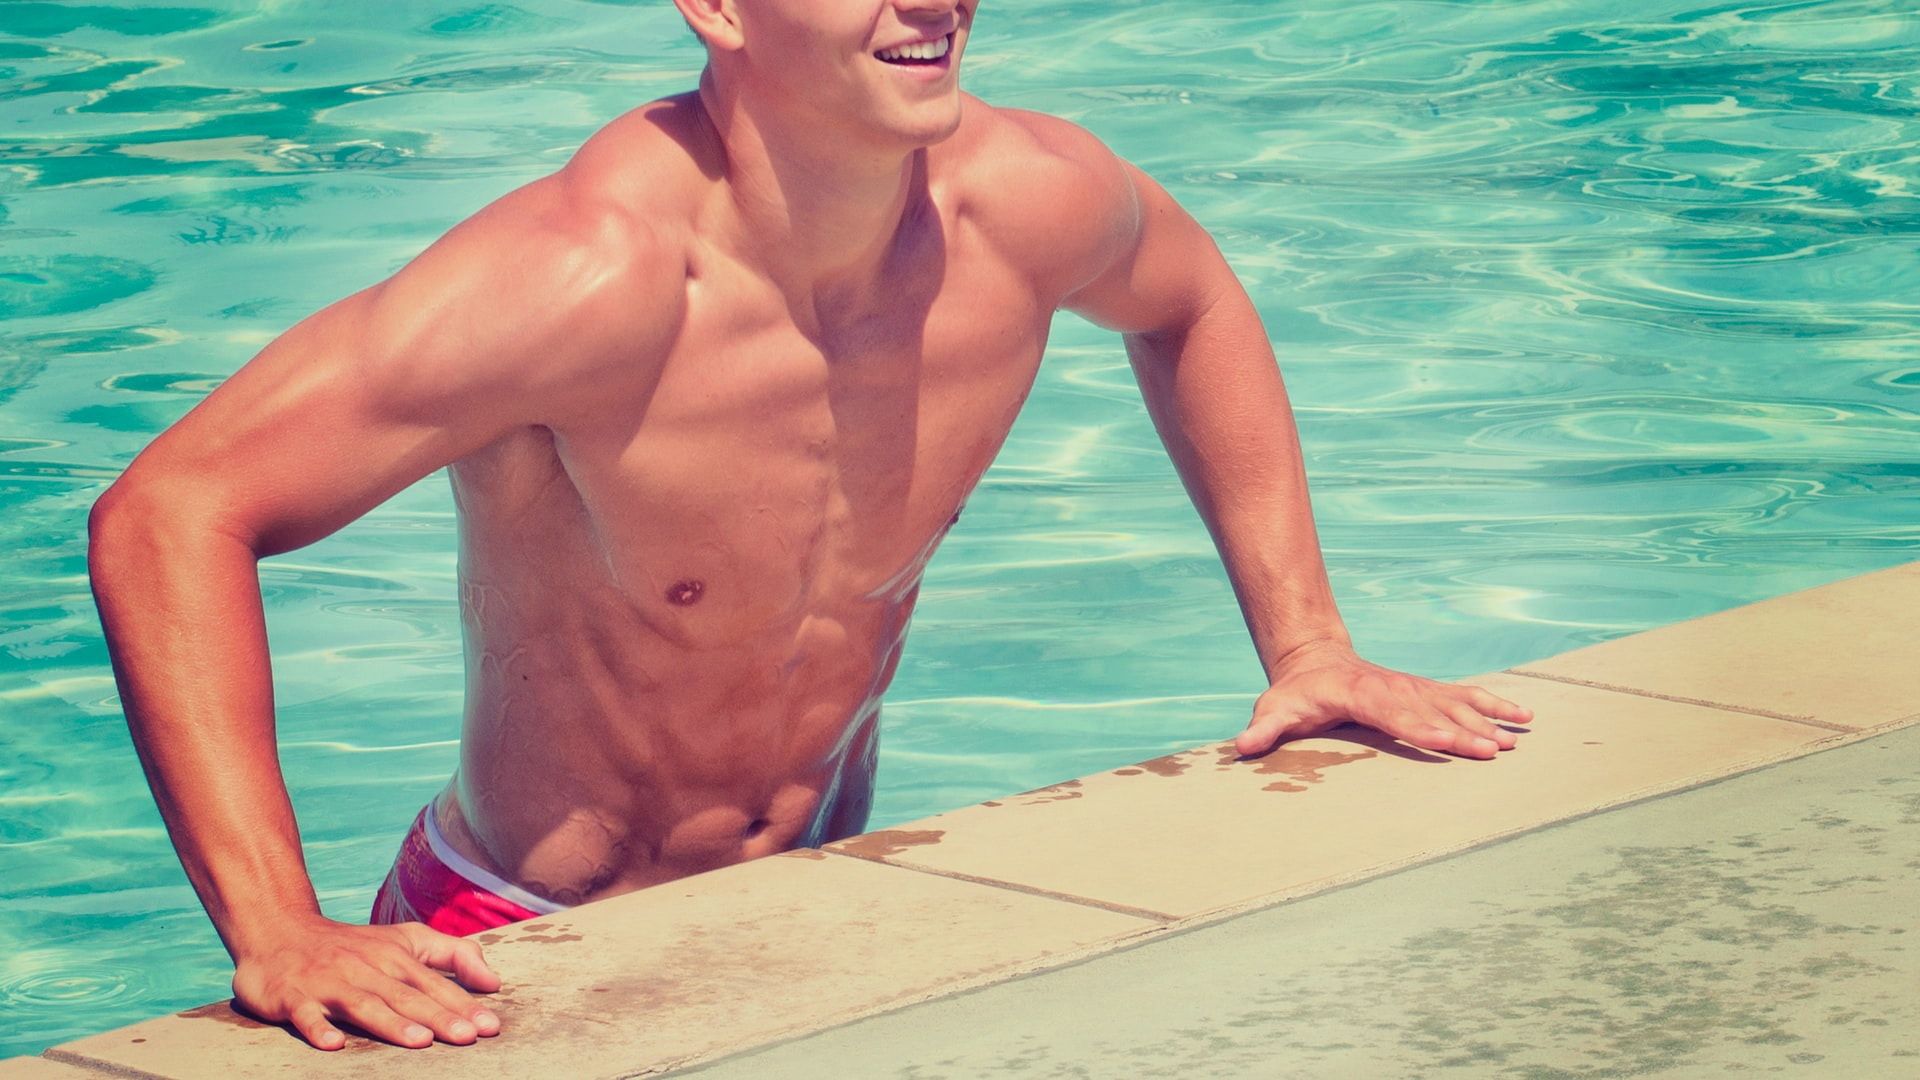 shirtless man with abs exiting pool